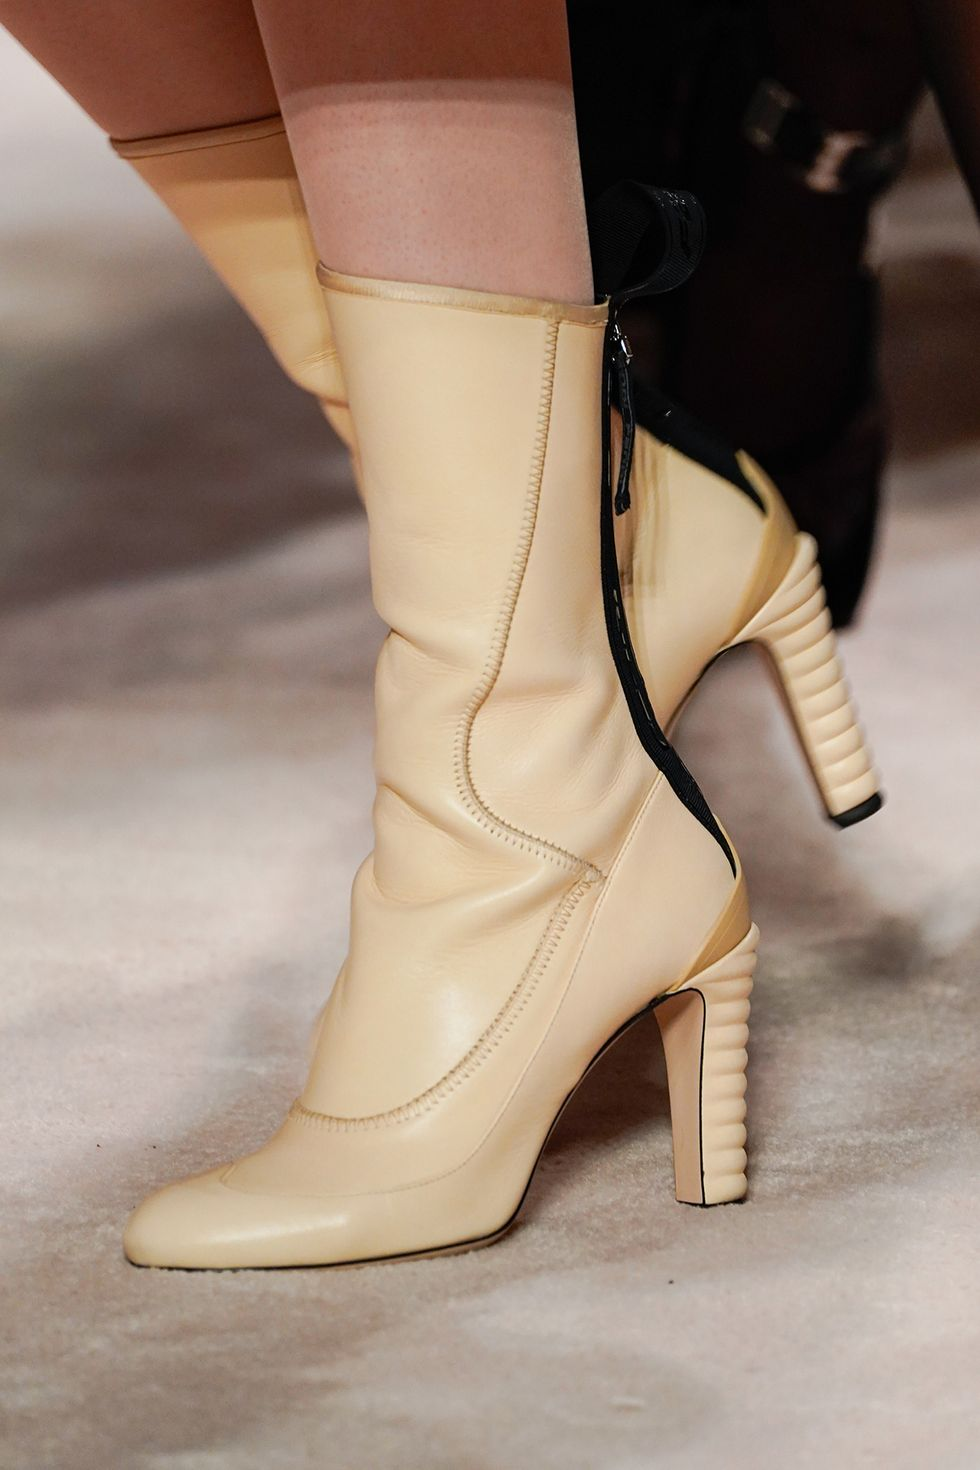 fendi-fall-2020-runway-shoes-leather-mid-calf-boot-1582236669.jpg (980×1470)